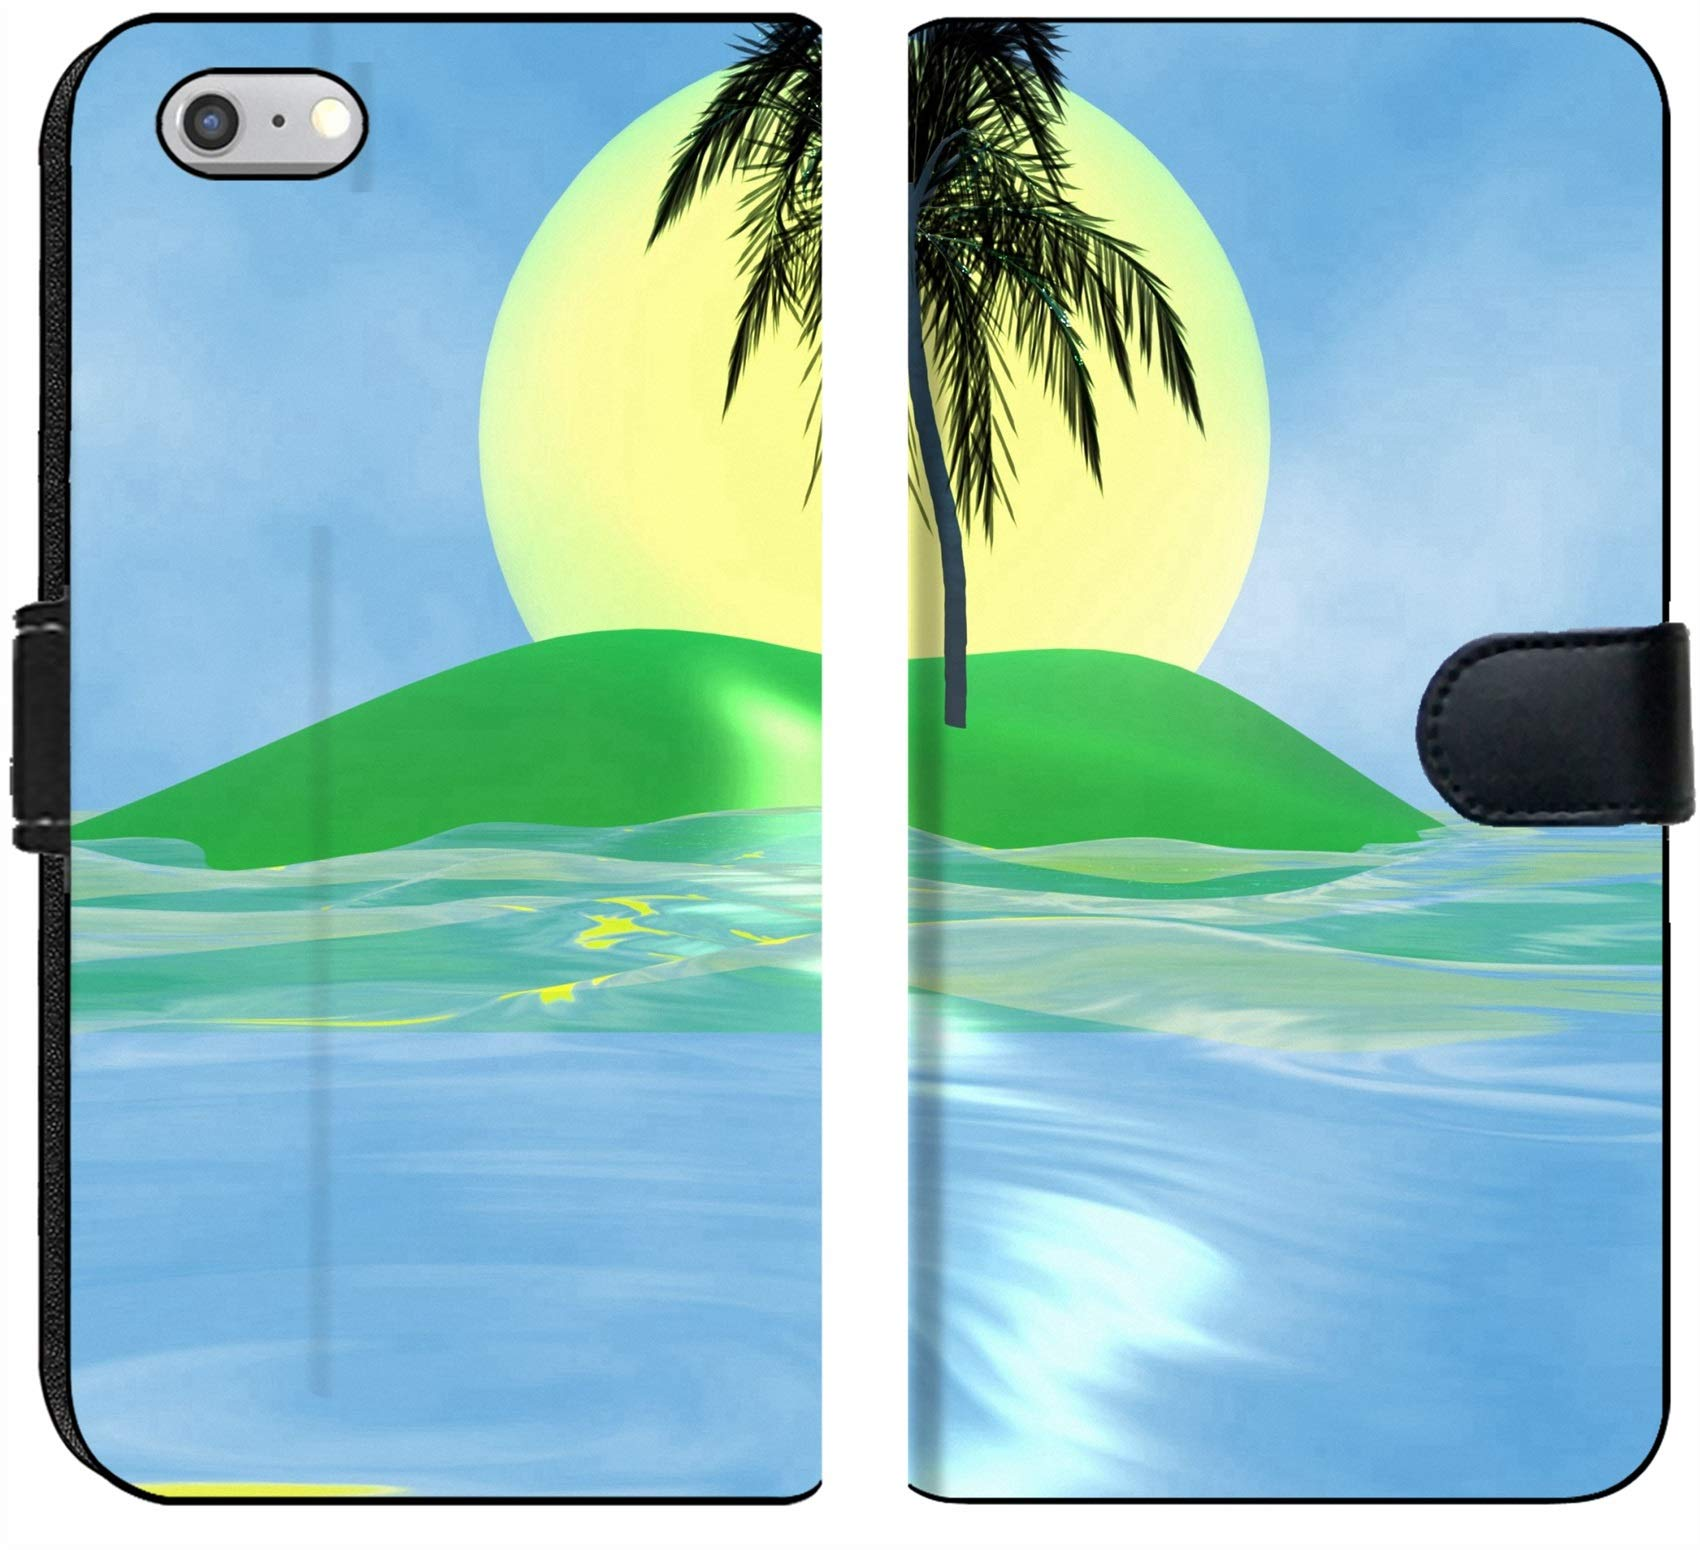 Luxlady iPhone 6 and iPhone 6S Flip Fabric Wallet Case Solar Island with a Palm Tree in The Huge Dark Blue sea Image ID 2842537